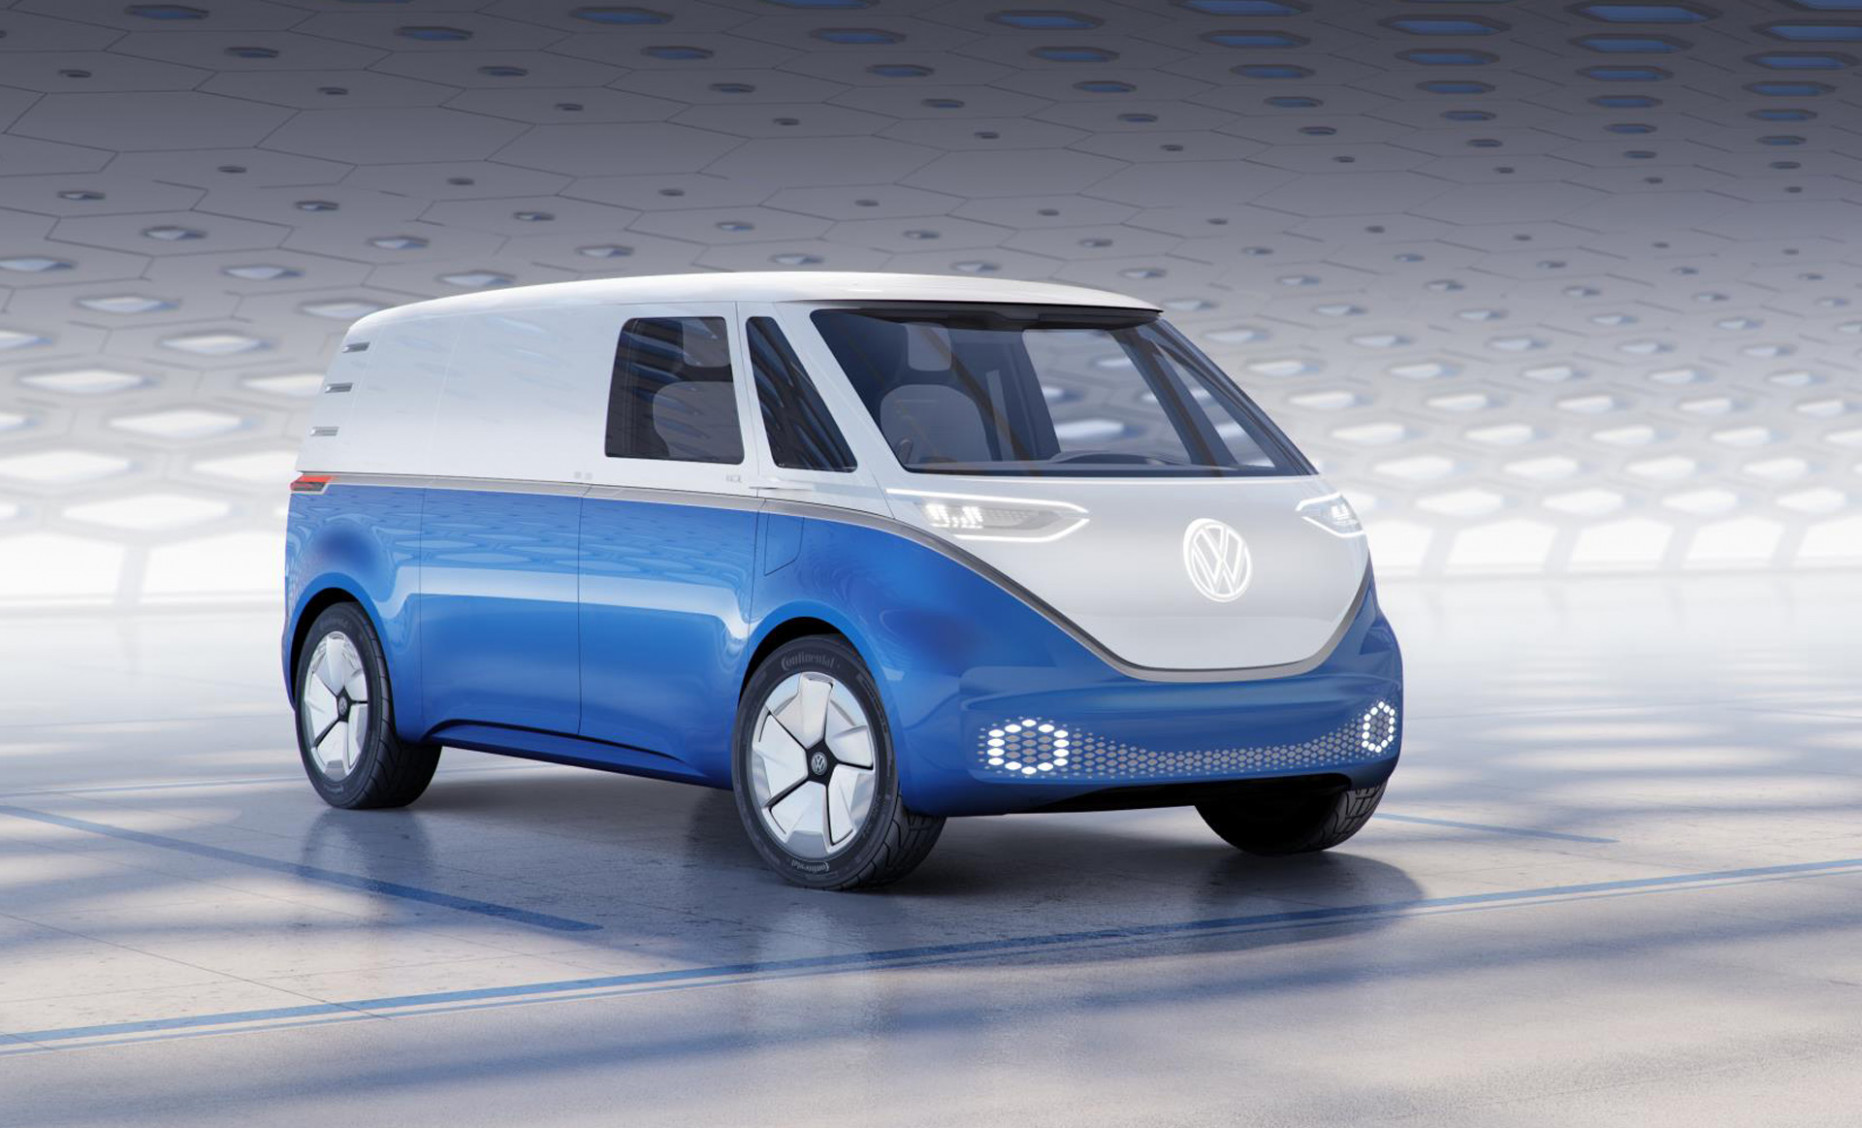 Electric Volkswagen Microbus concept gets right down to business - volkswagen electric bus 2020